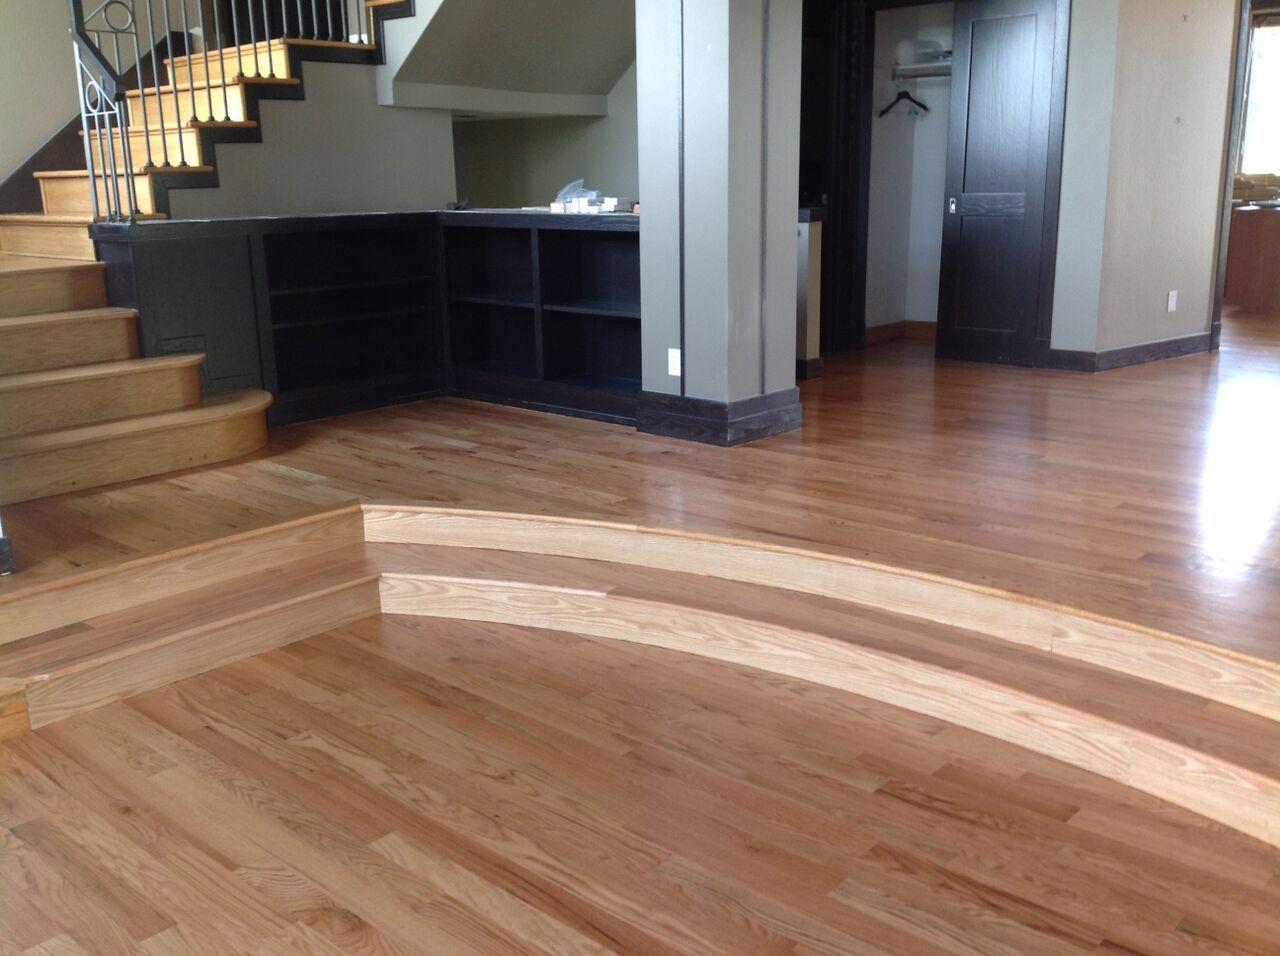 Red Oak curved stairs that we installed. Bamboo flooring